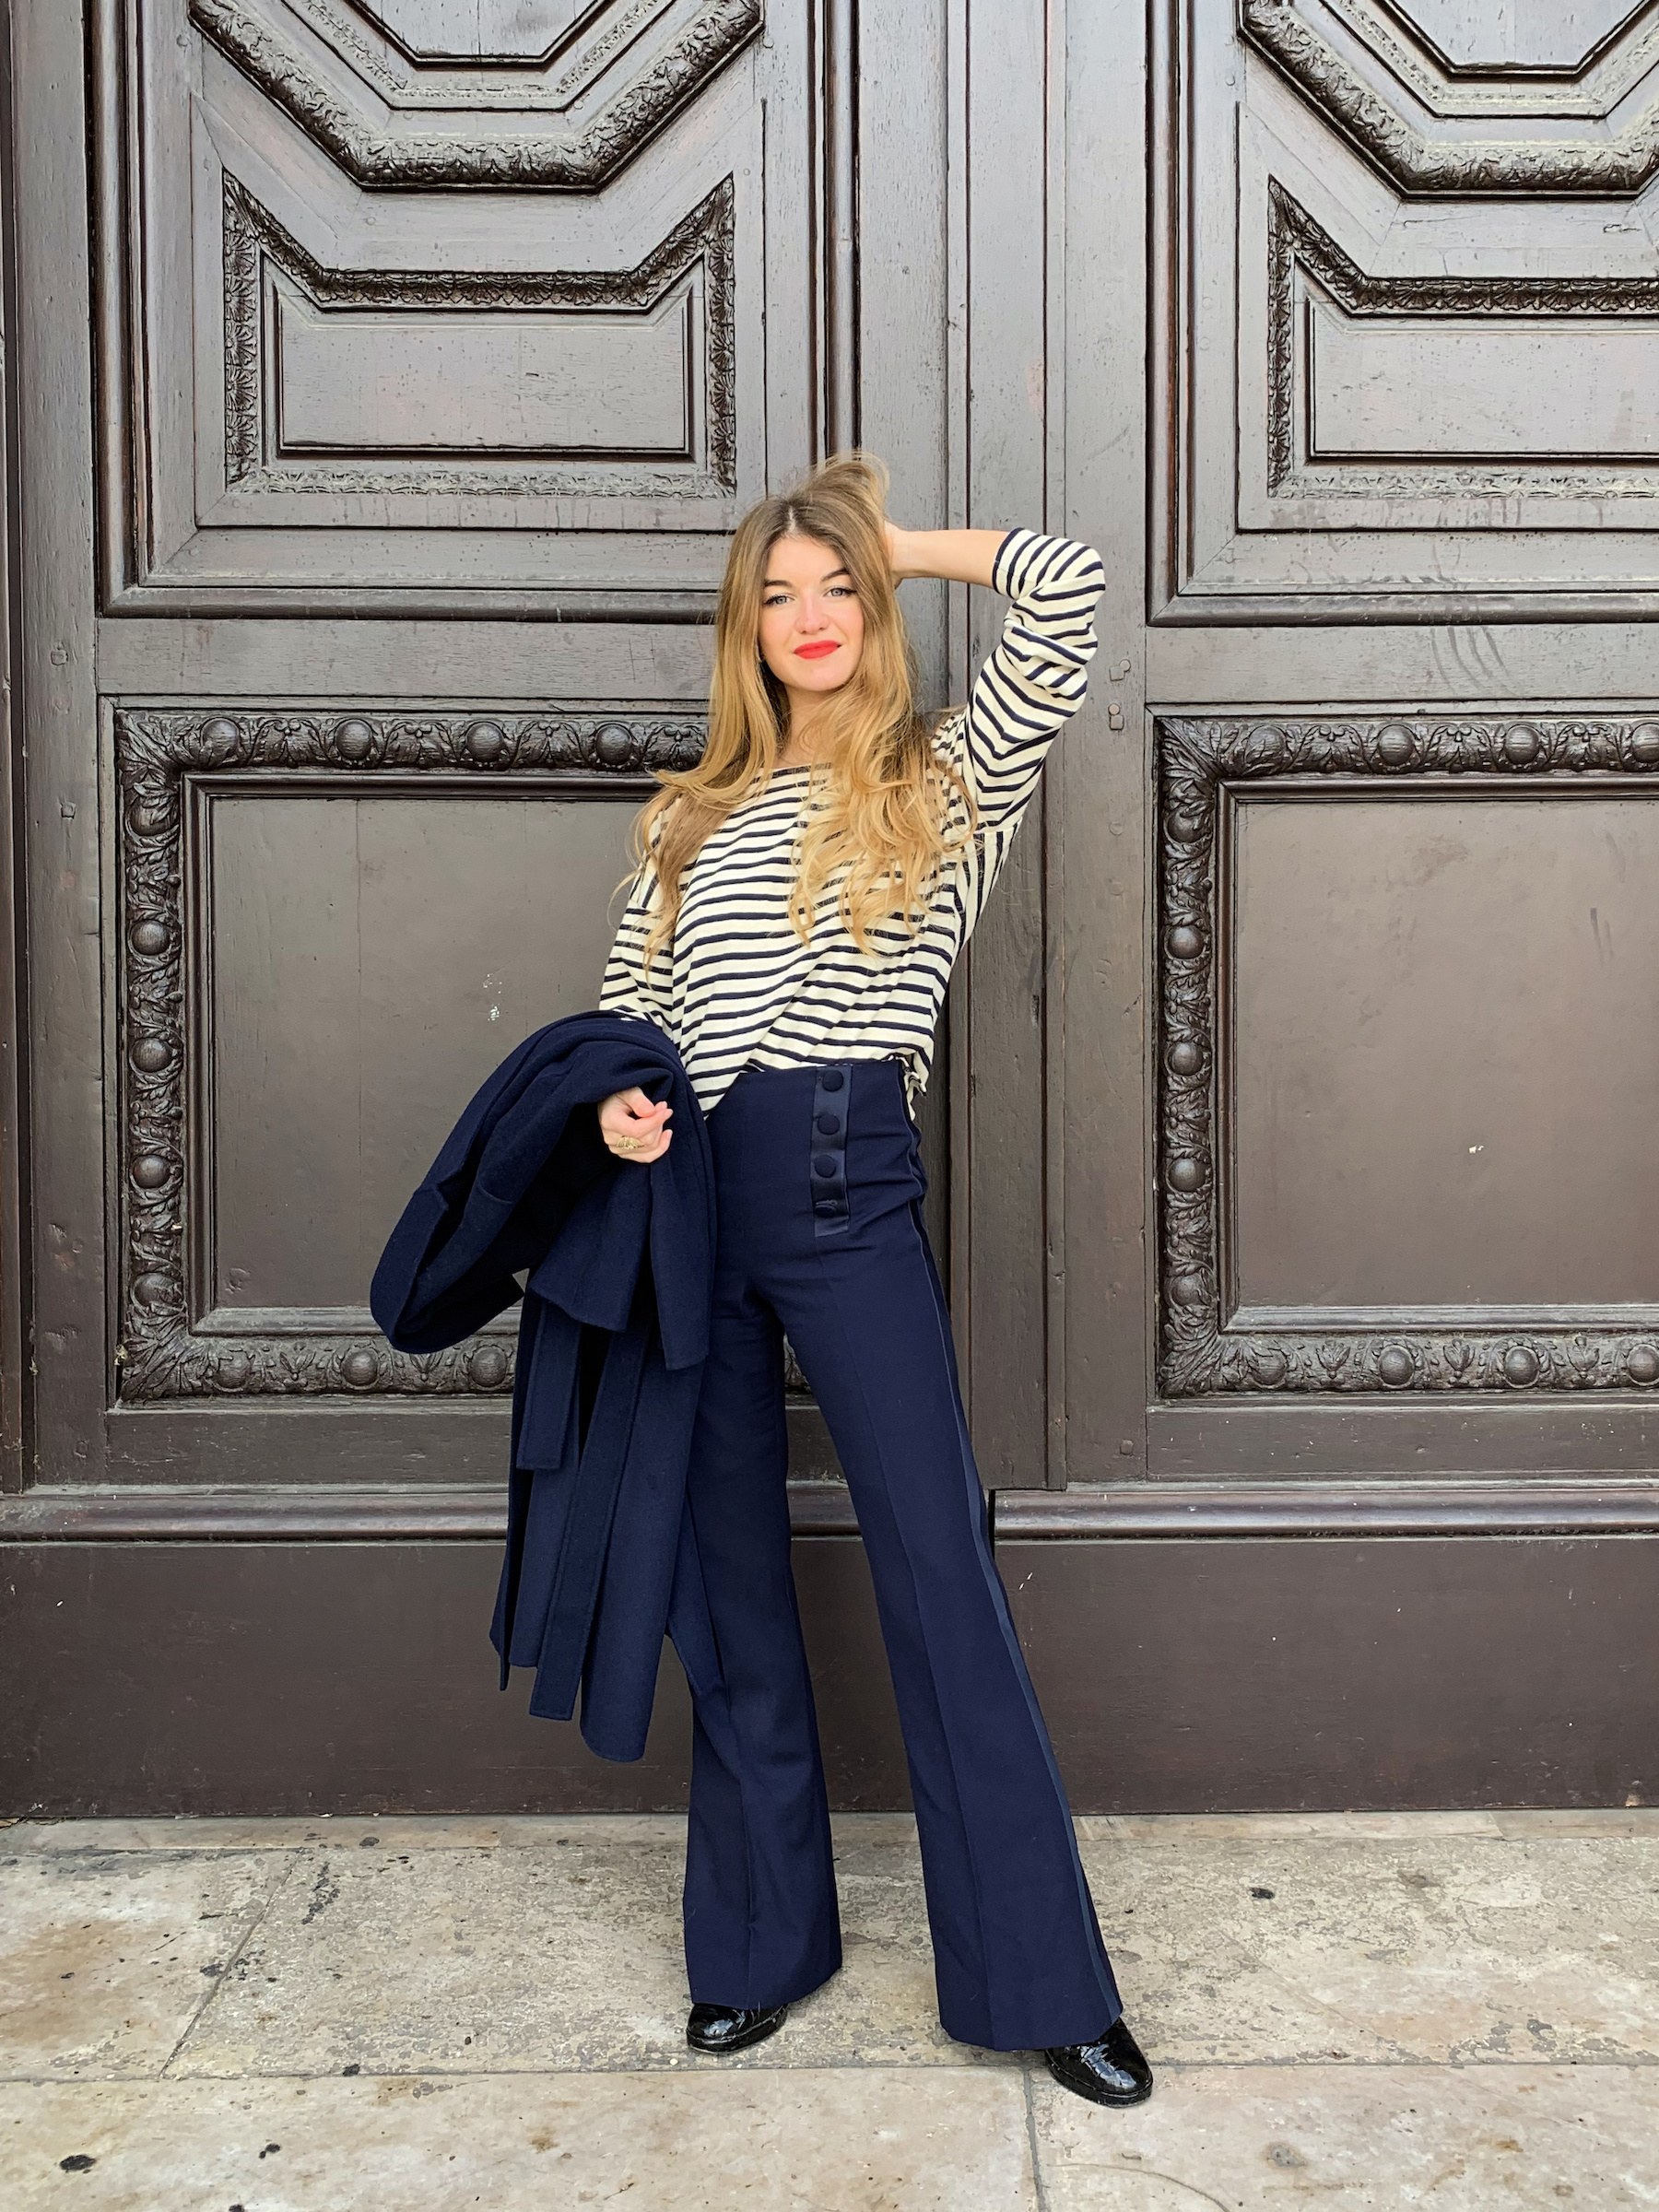 Constance Arnoult wearing high waisted navy pants in Paris